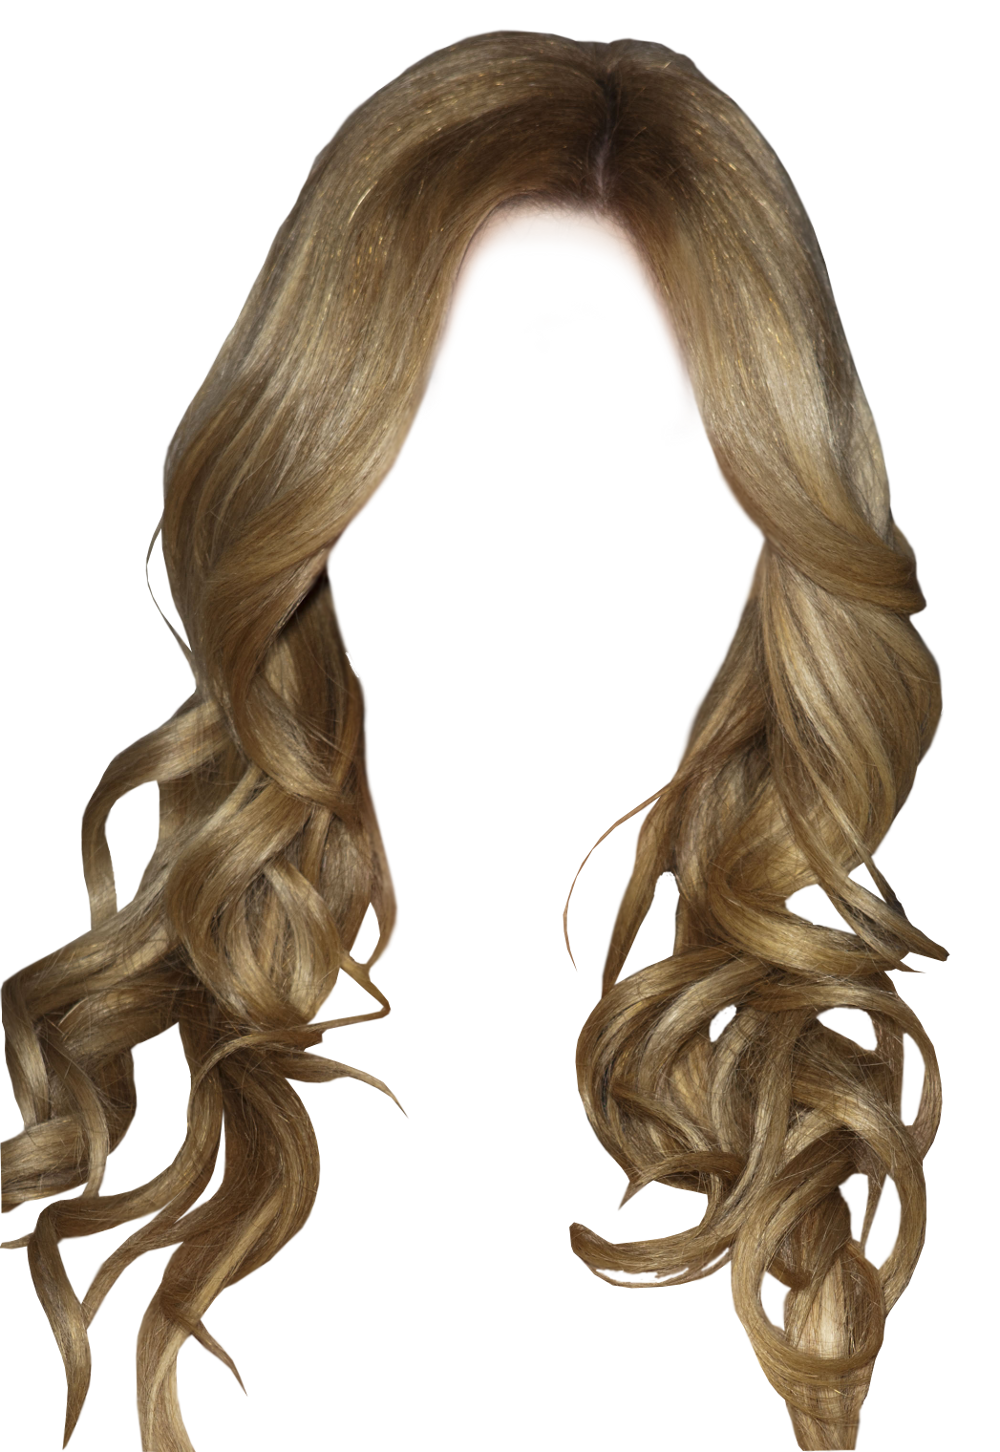 Hair girl png. Hairstyles transparent images pluspng